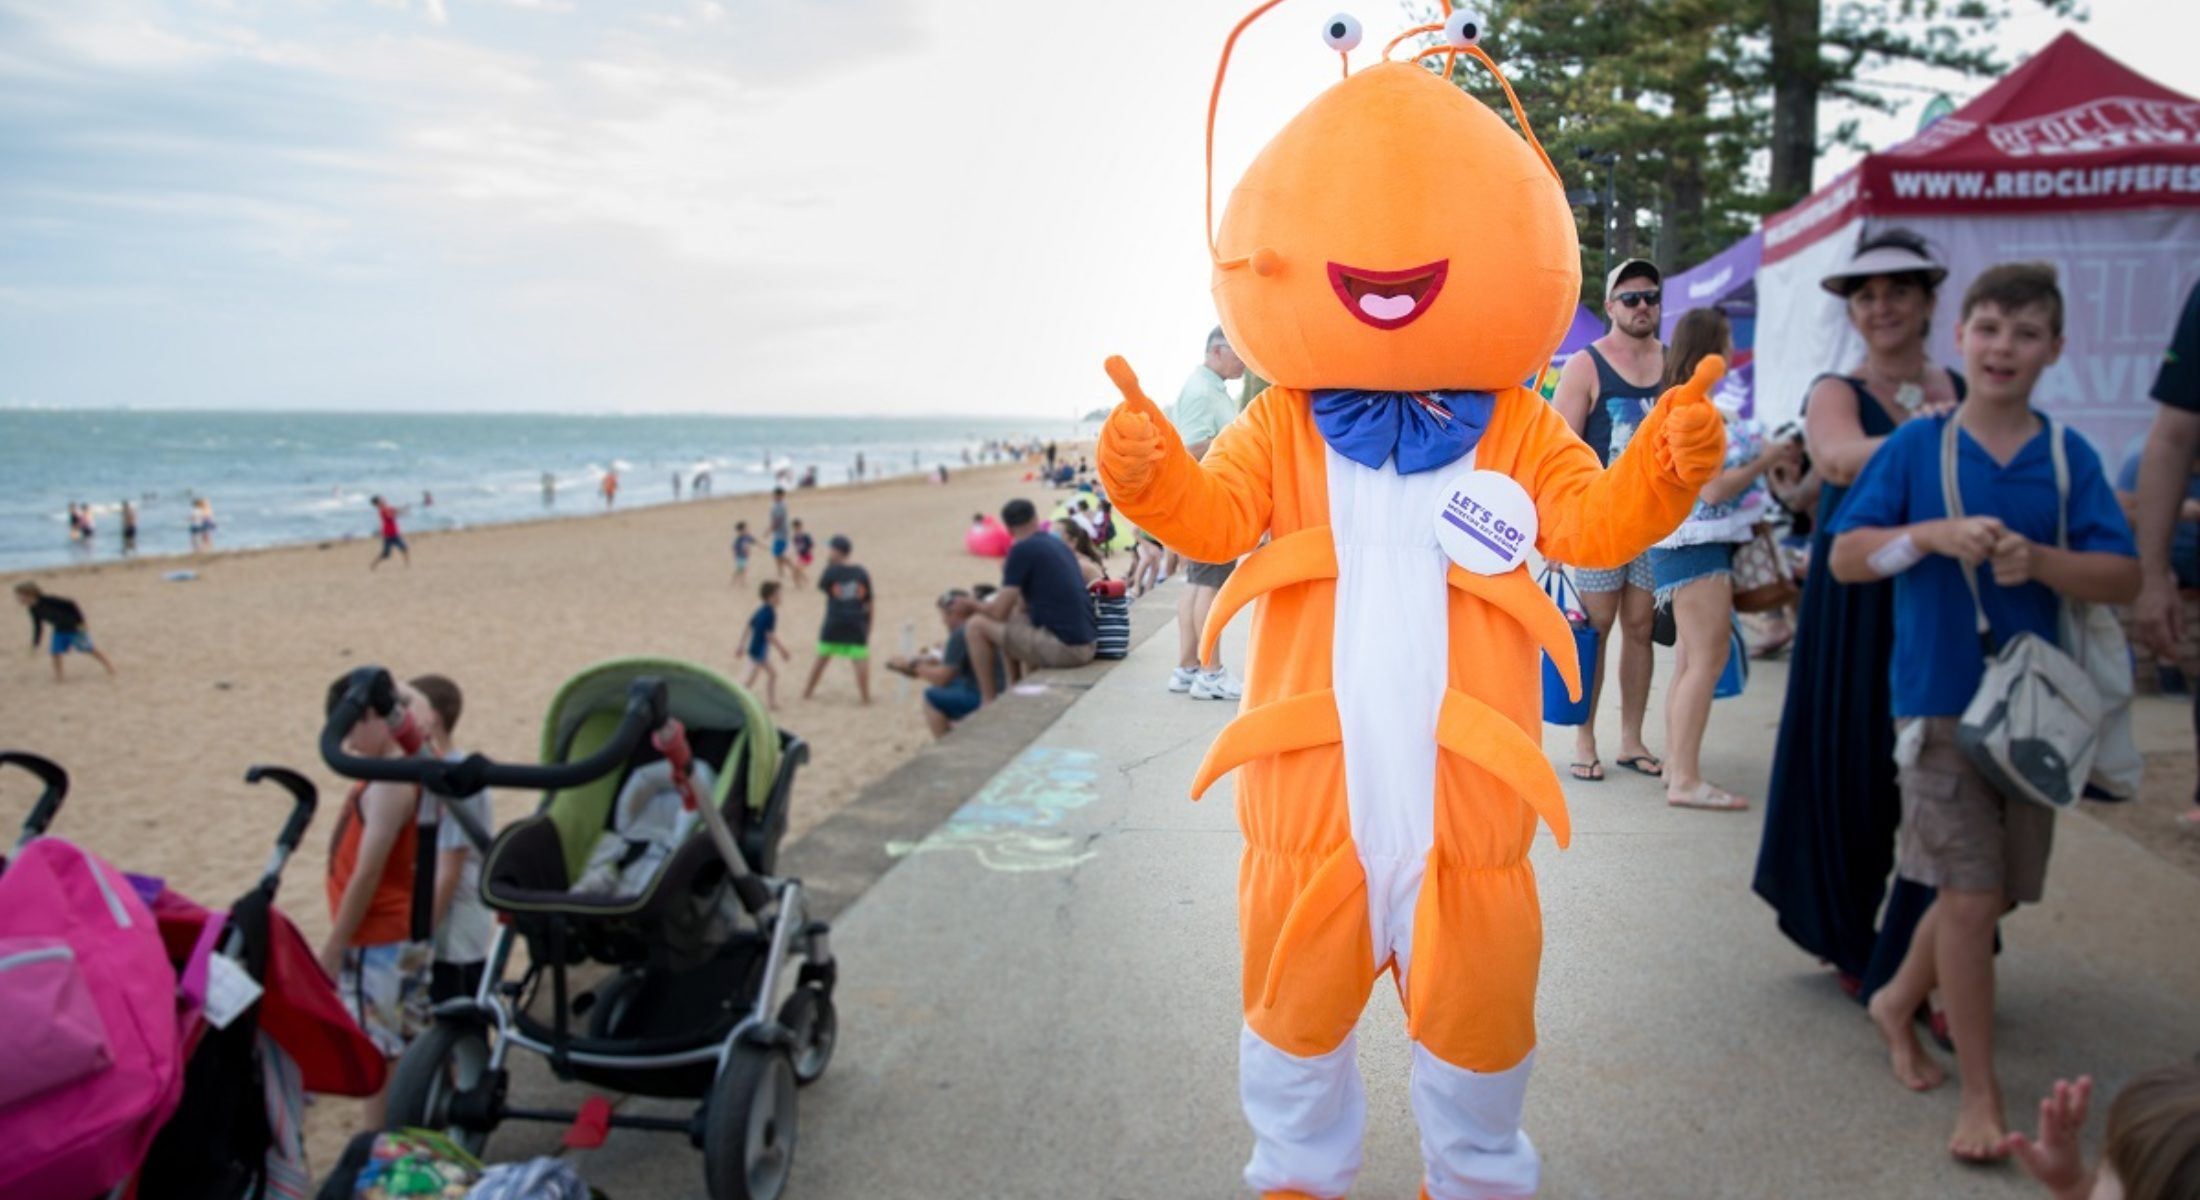 Suttons Beach Australia Day Morty Moreton Bay Bug Free Family Event